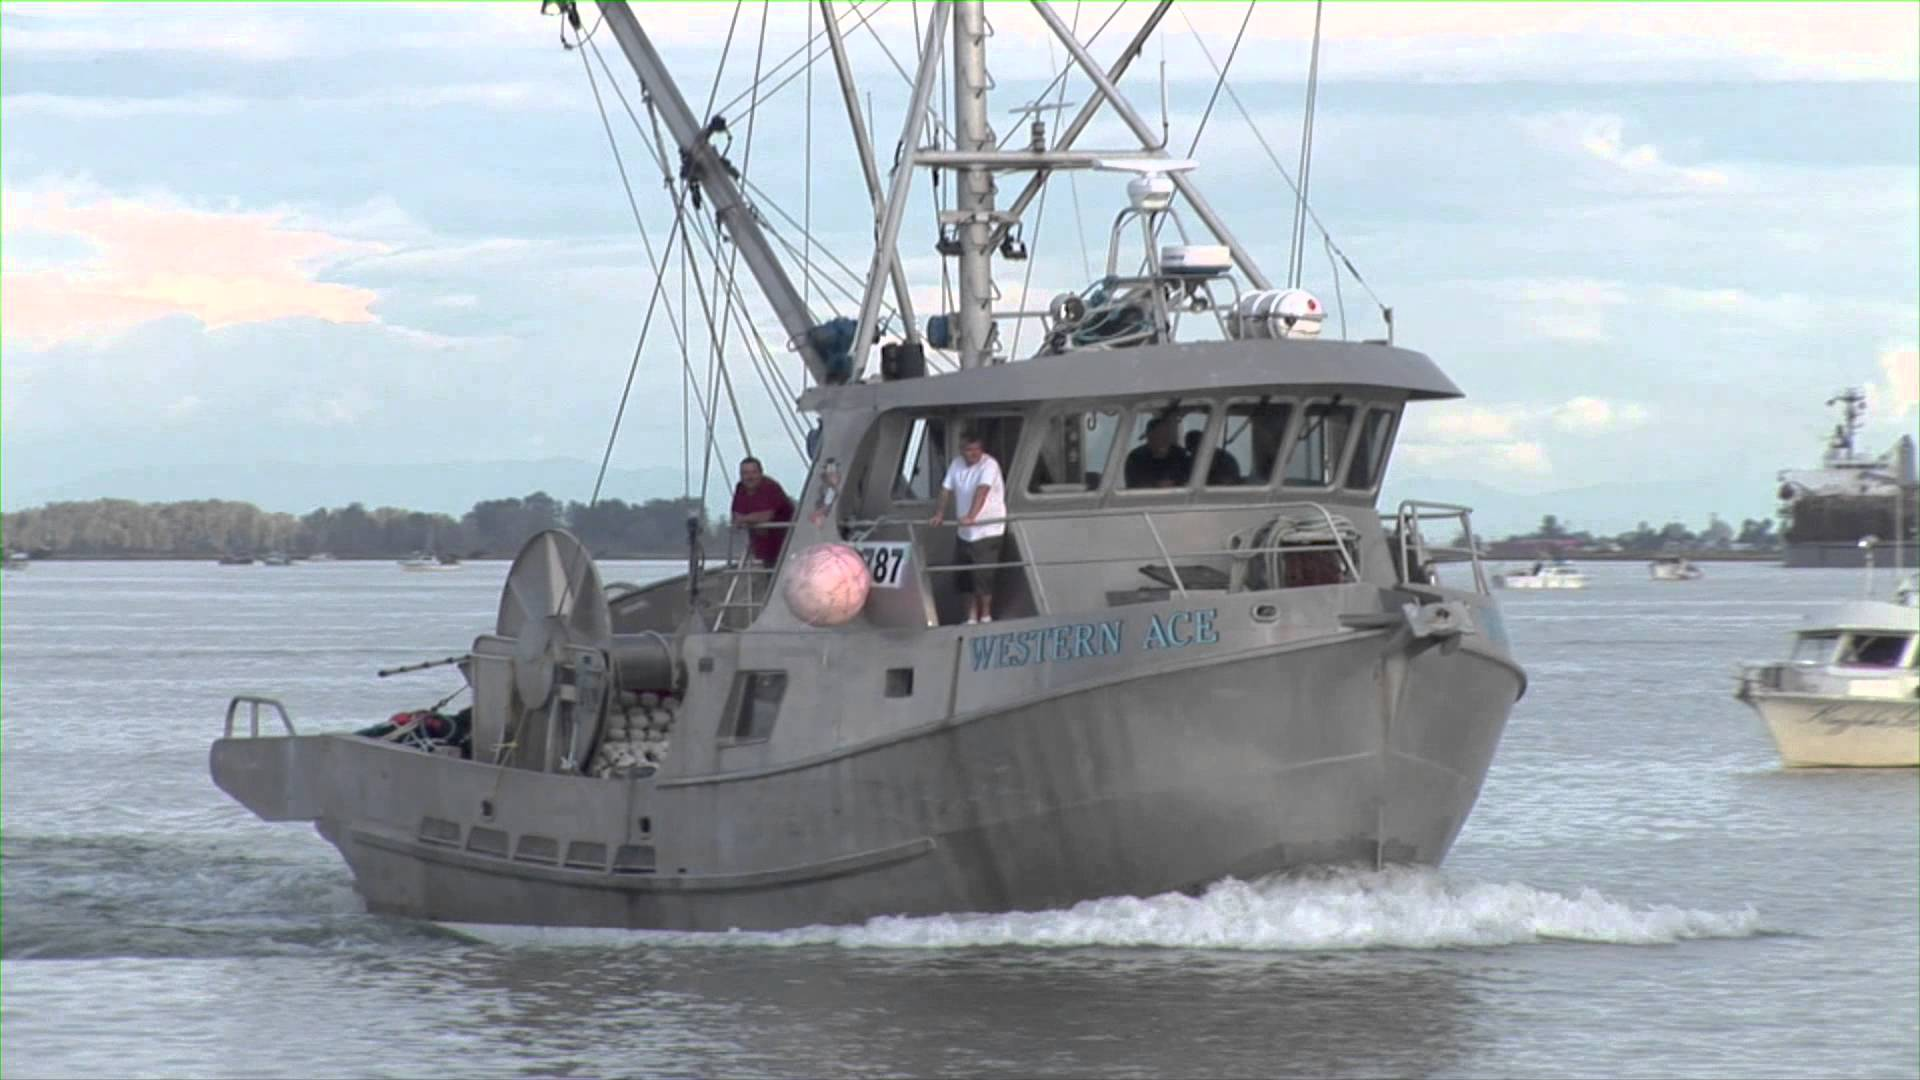 FISHING BOATS and marine traffic fraser river 2010 - YouTube